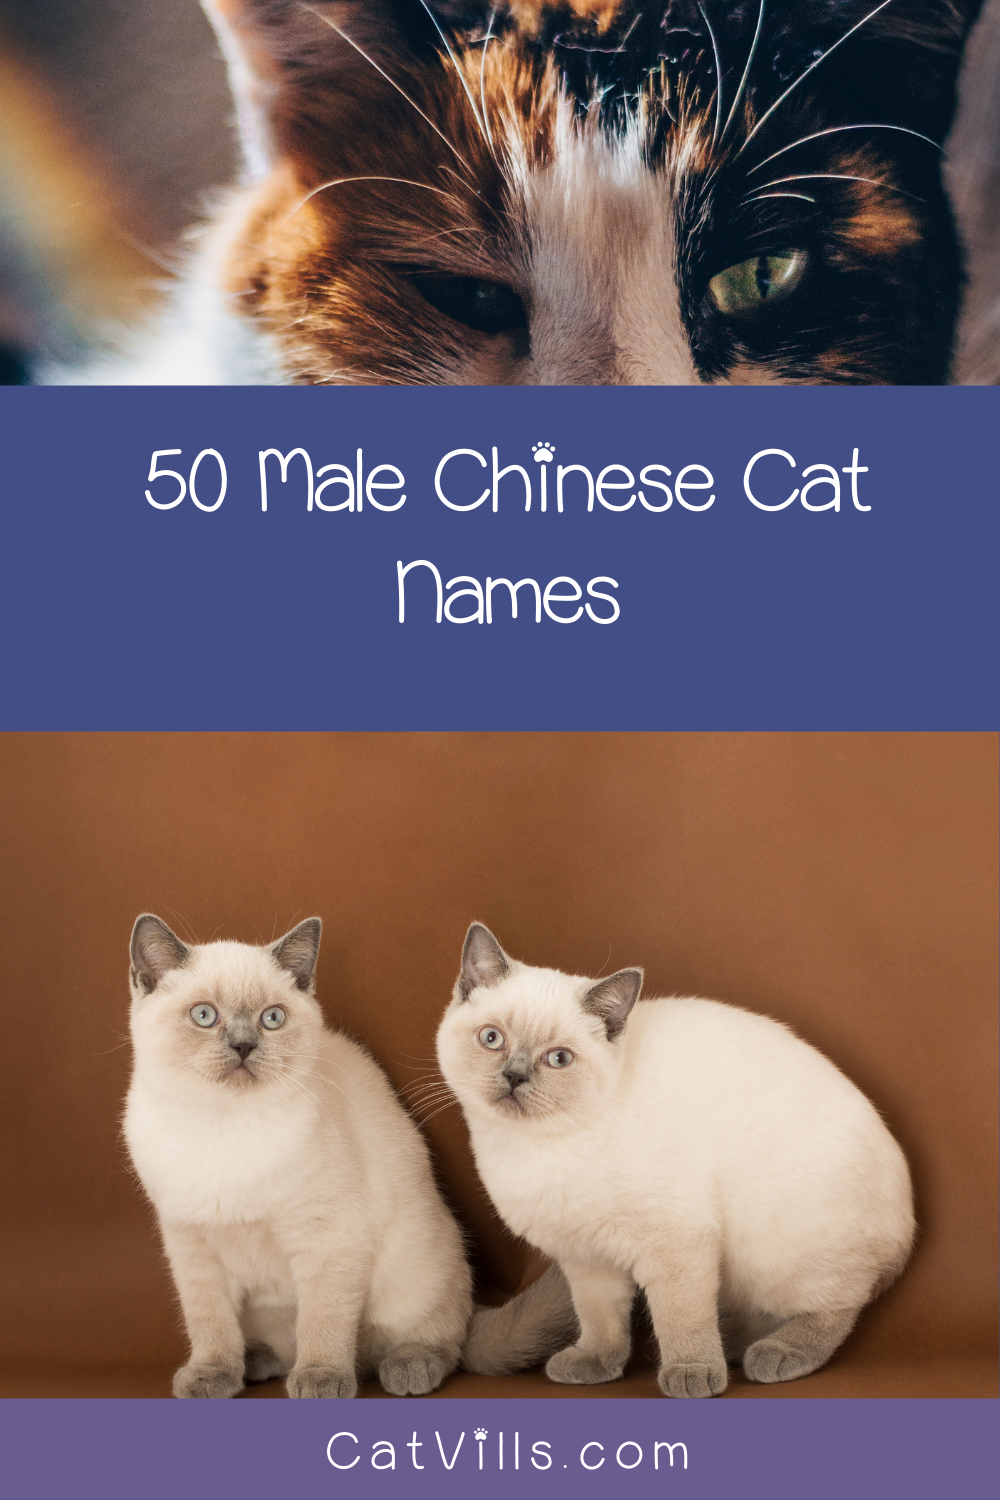 100 Exceptional Chinese Cat Names For Your New Kitten Catvills In 2020 Cat Names Funny Cat Memes Cats